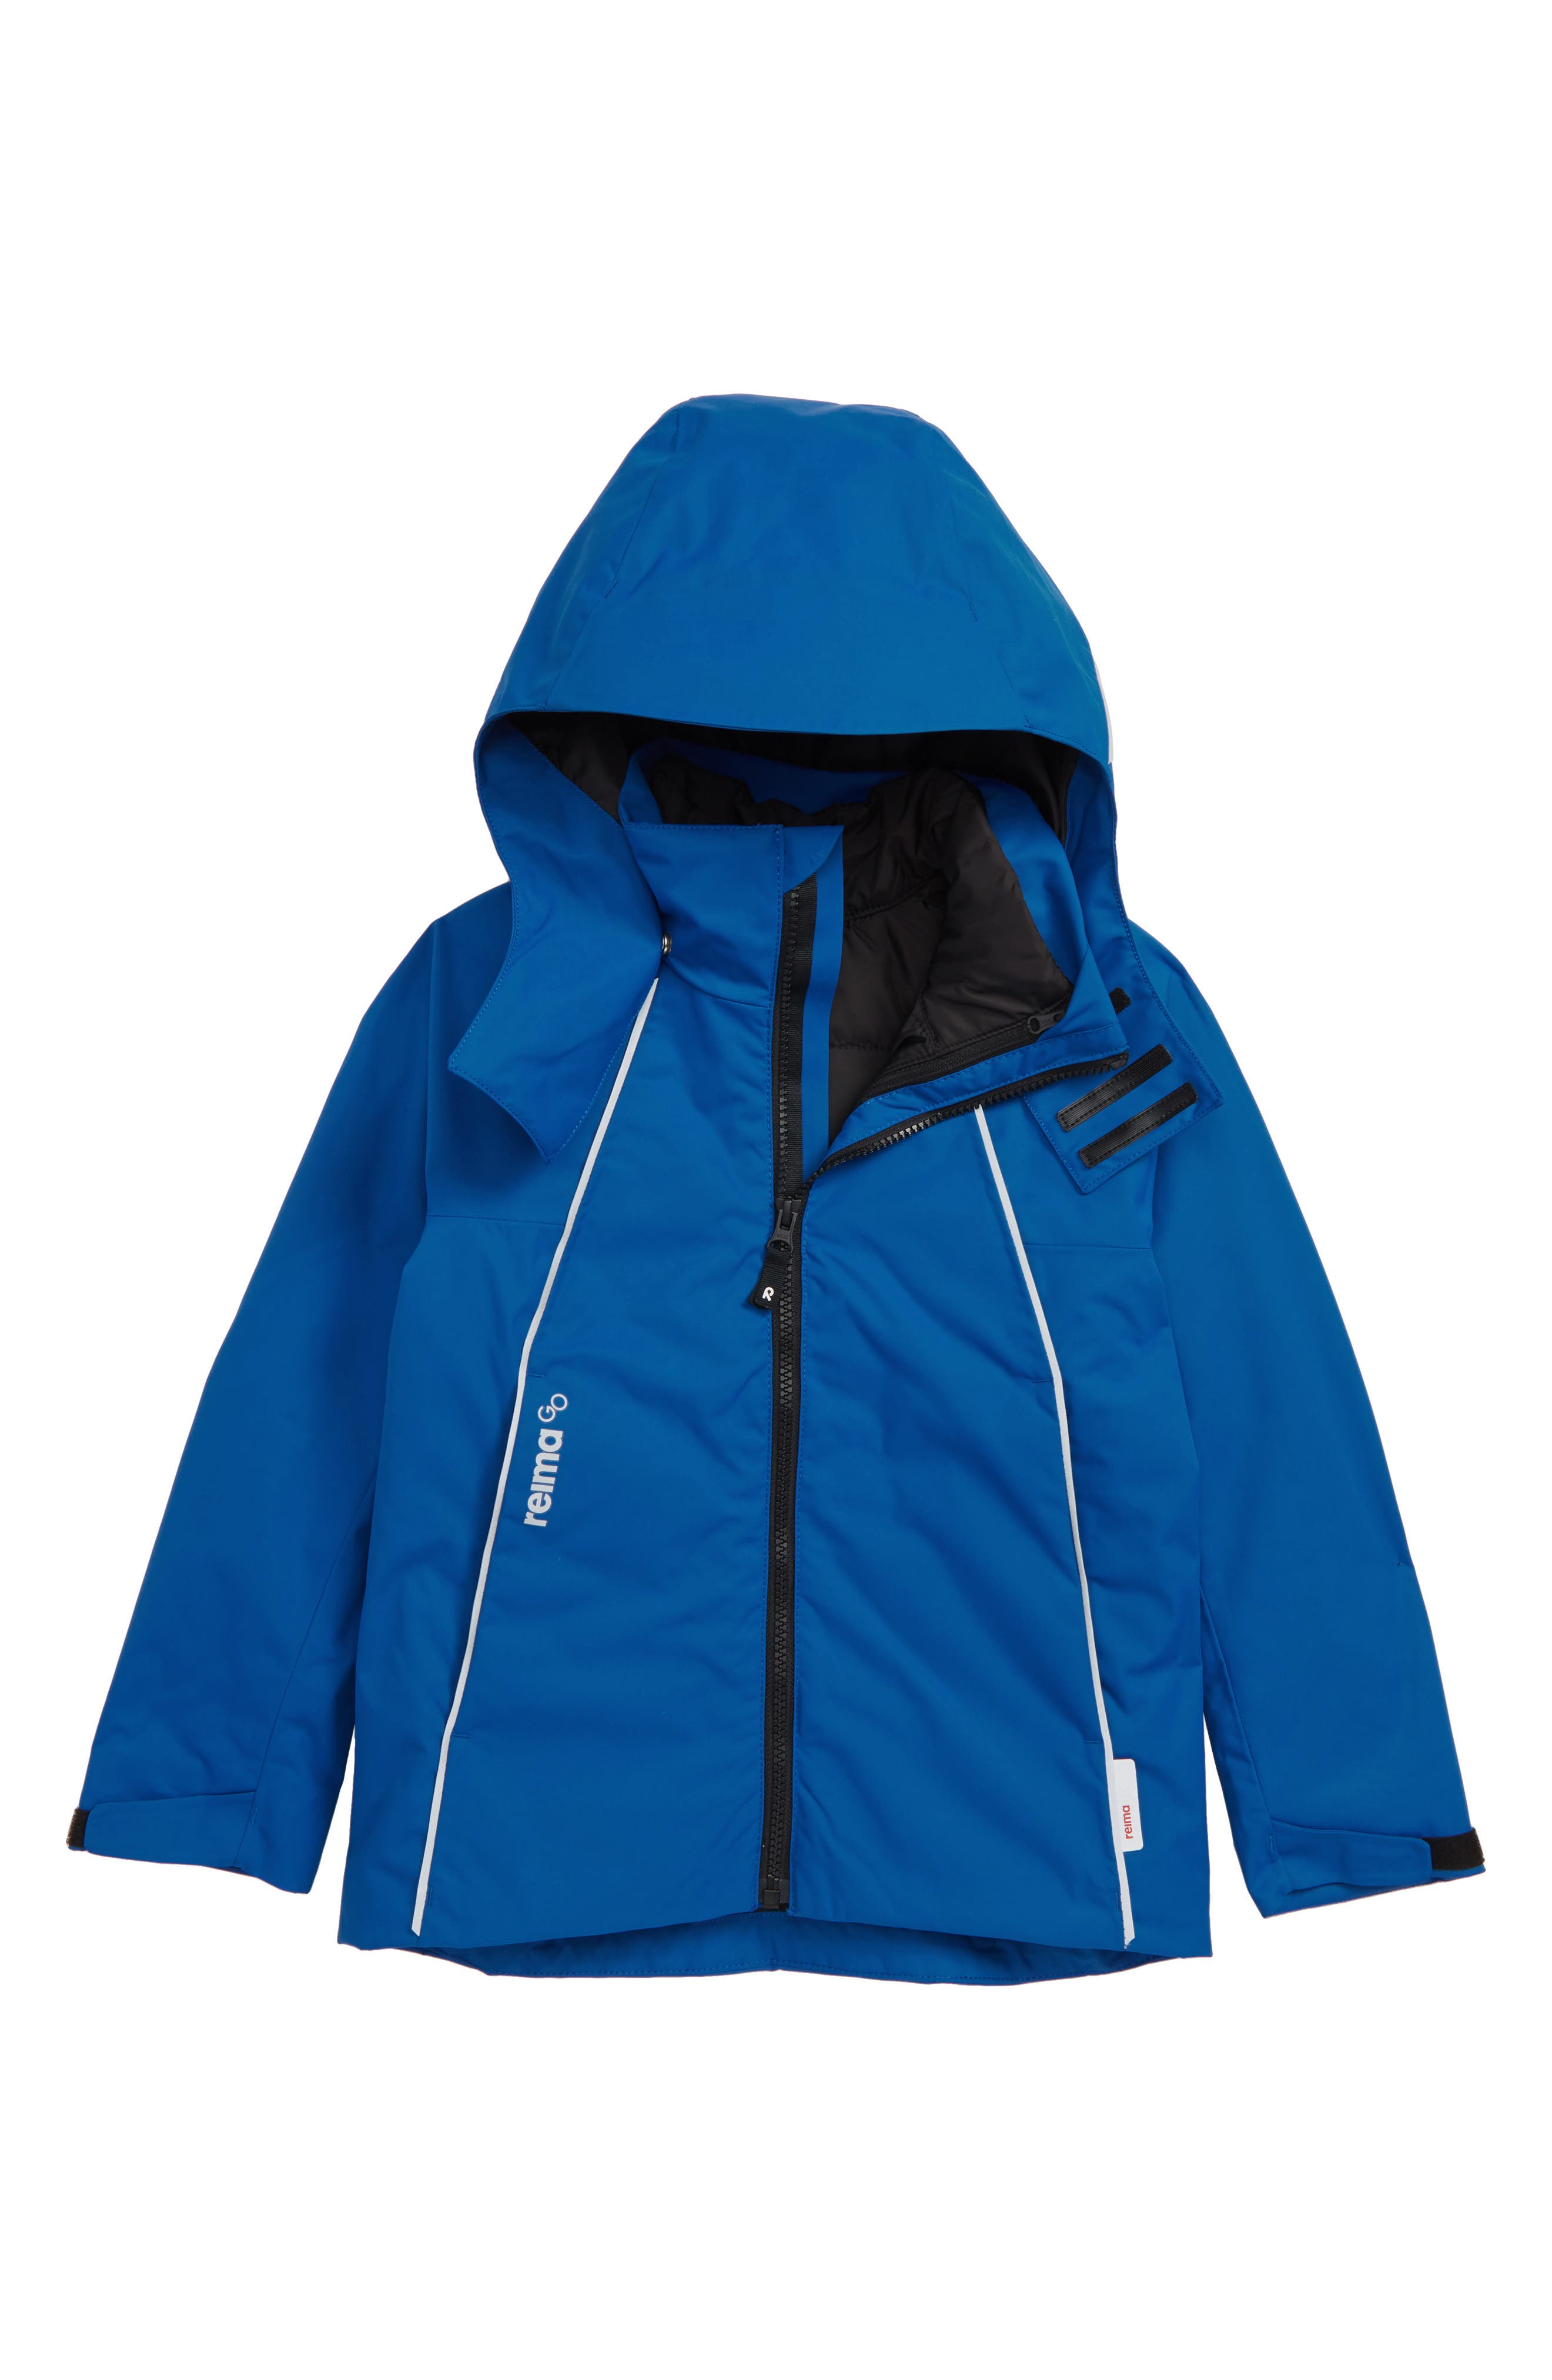 Brisk Reimatec<sup>®</sup> 3-in-1 Windproof & Waterproof Jacket,                             Main thumbnail 1, color,                             BLUE